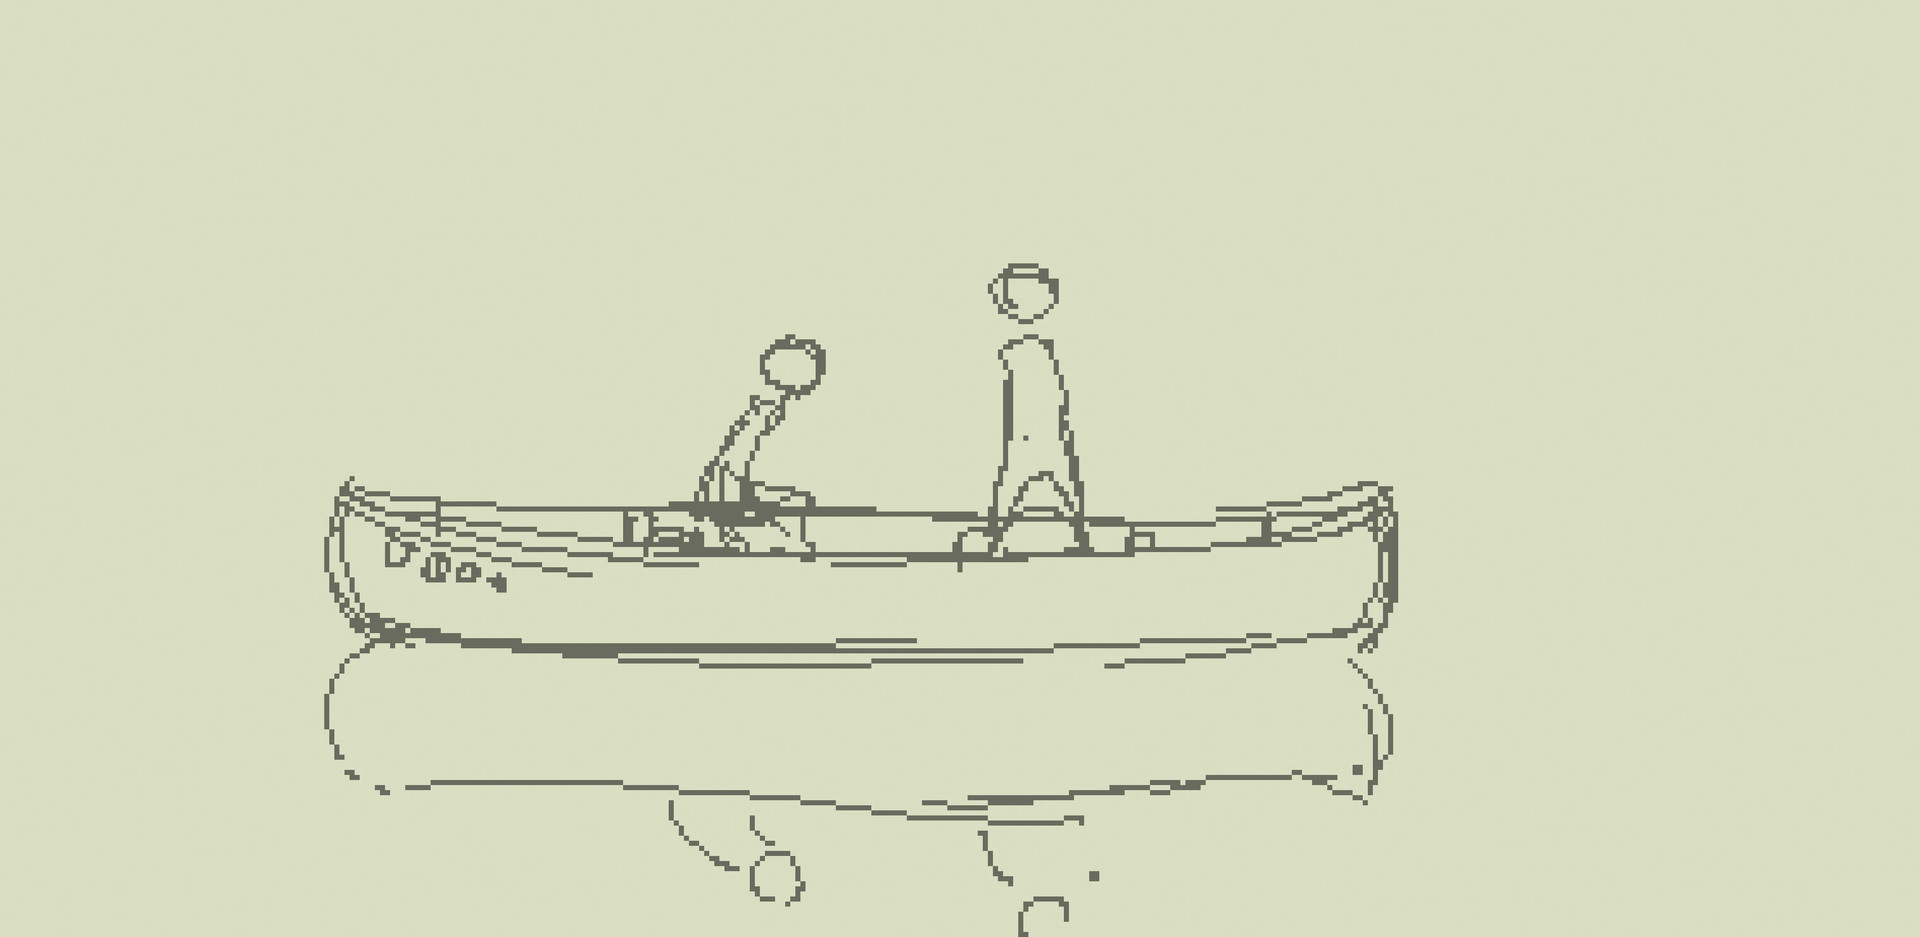 Samuel herb morning canoe sketch